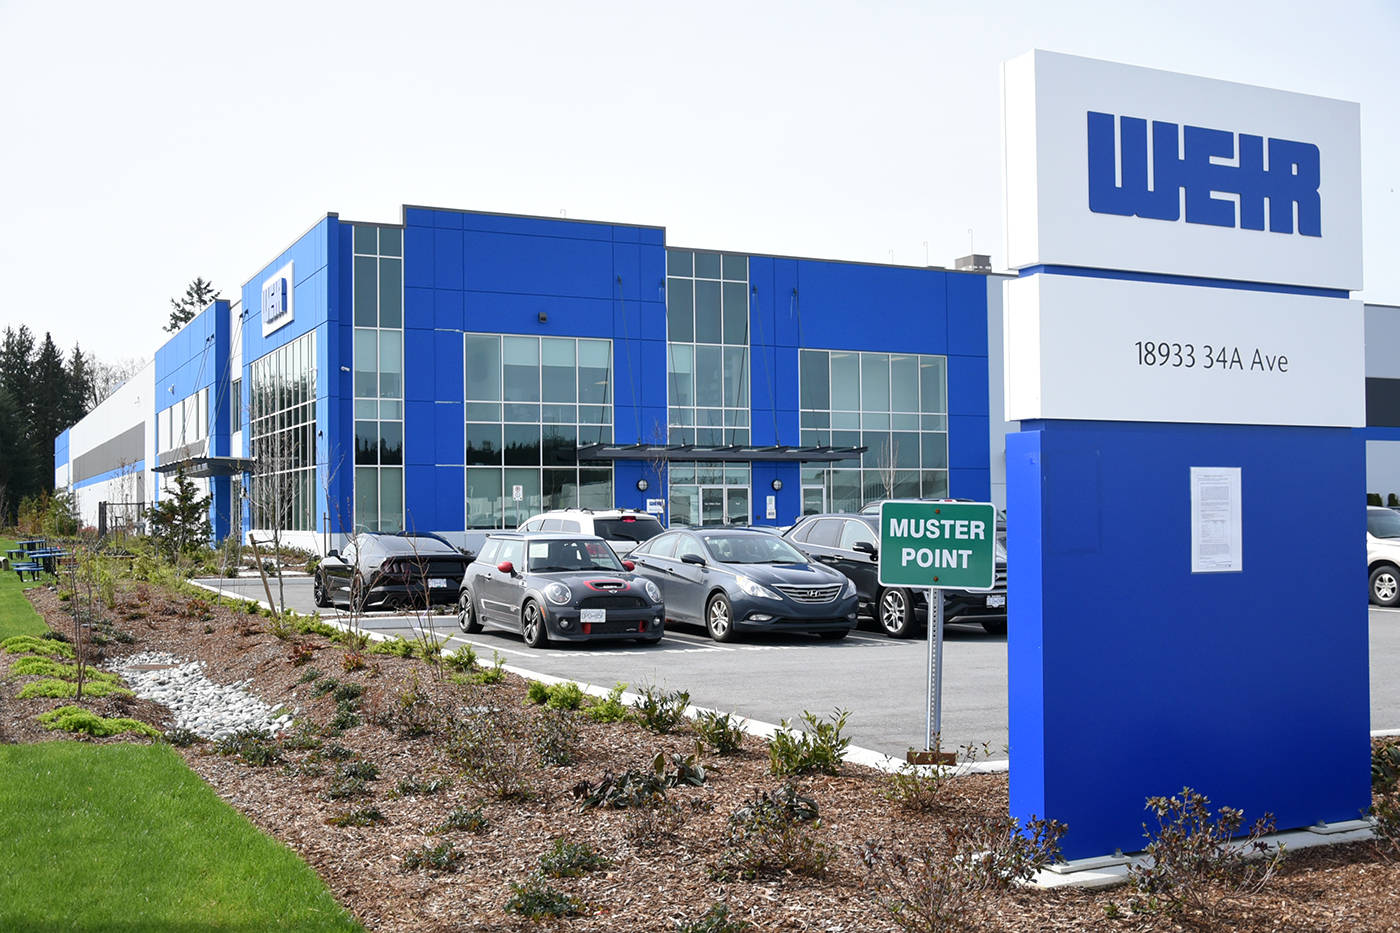 The Weir facility is located at 18933 34A Ave. in South Surrey's Campbell Heights business park. Miranda Gathercole Langley Times